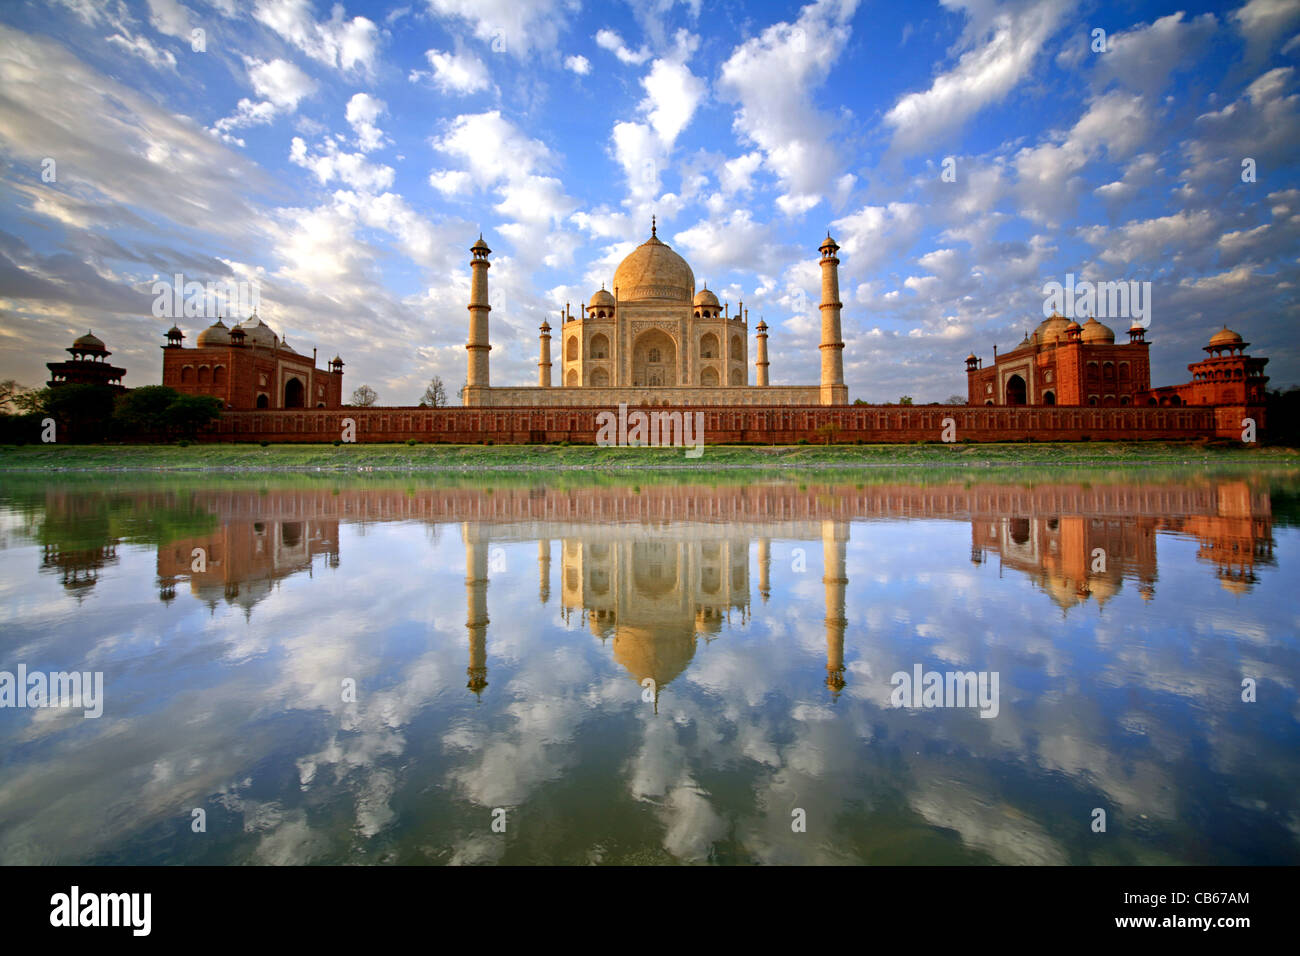 A stunning, once in a lifetime image of a sky full of puffy clouds reflected in the Yamuna River at the Taj Mahal - Stock Image